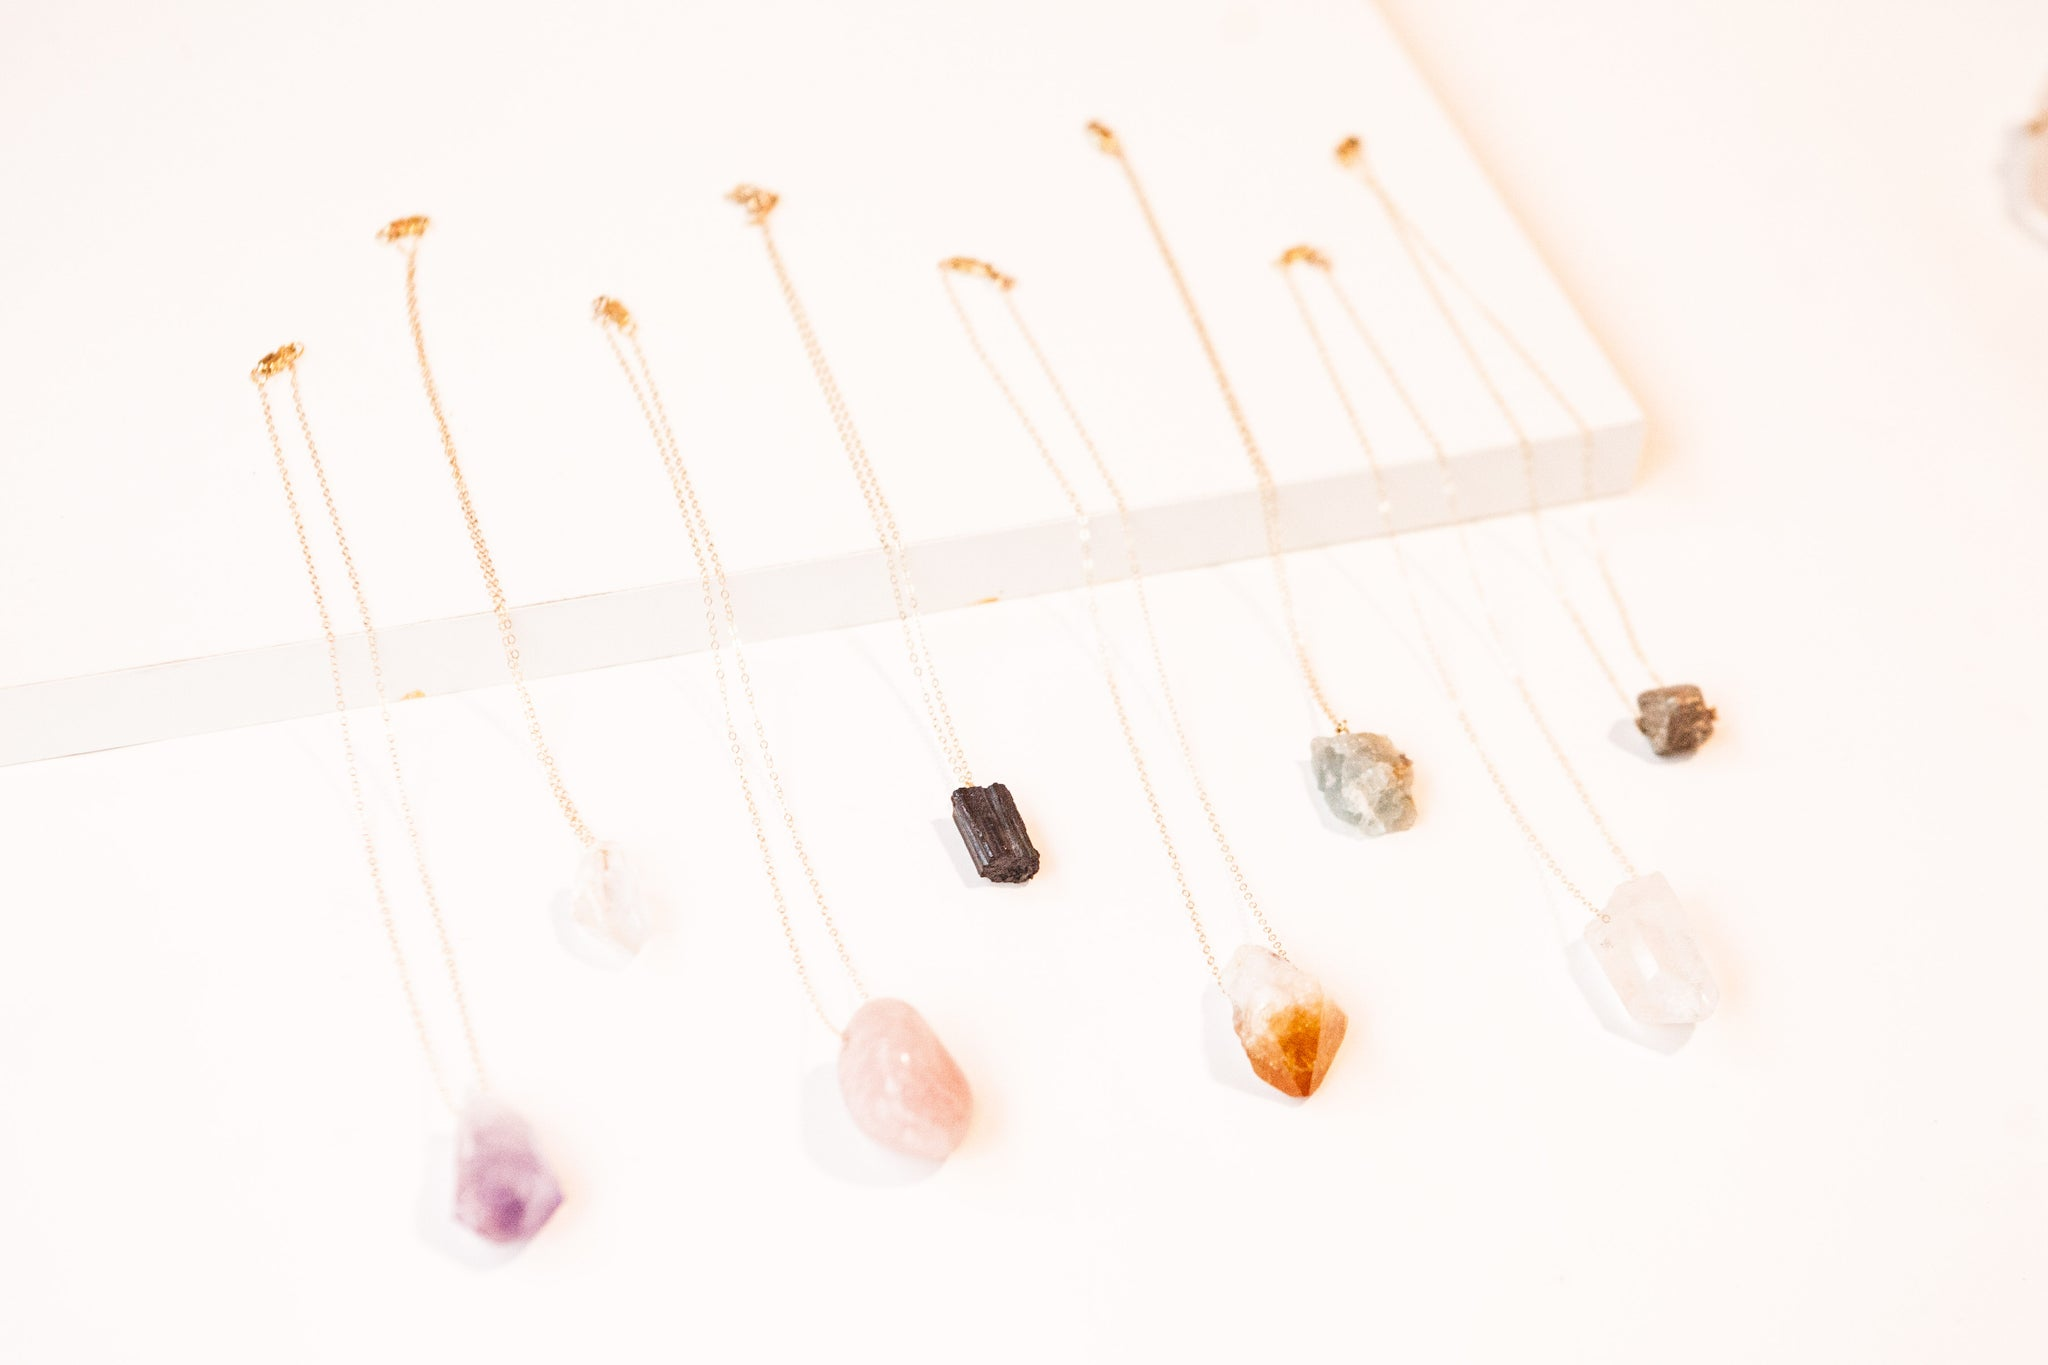 14k gold filled crystal jewelry | natural stone jewelry by Awakened Rose | The Essentials